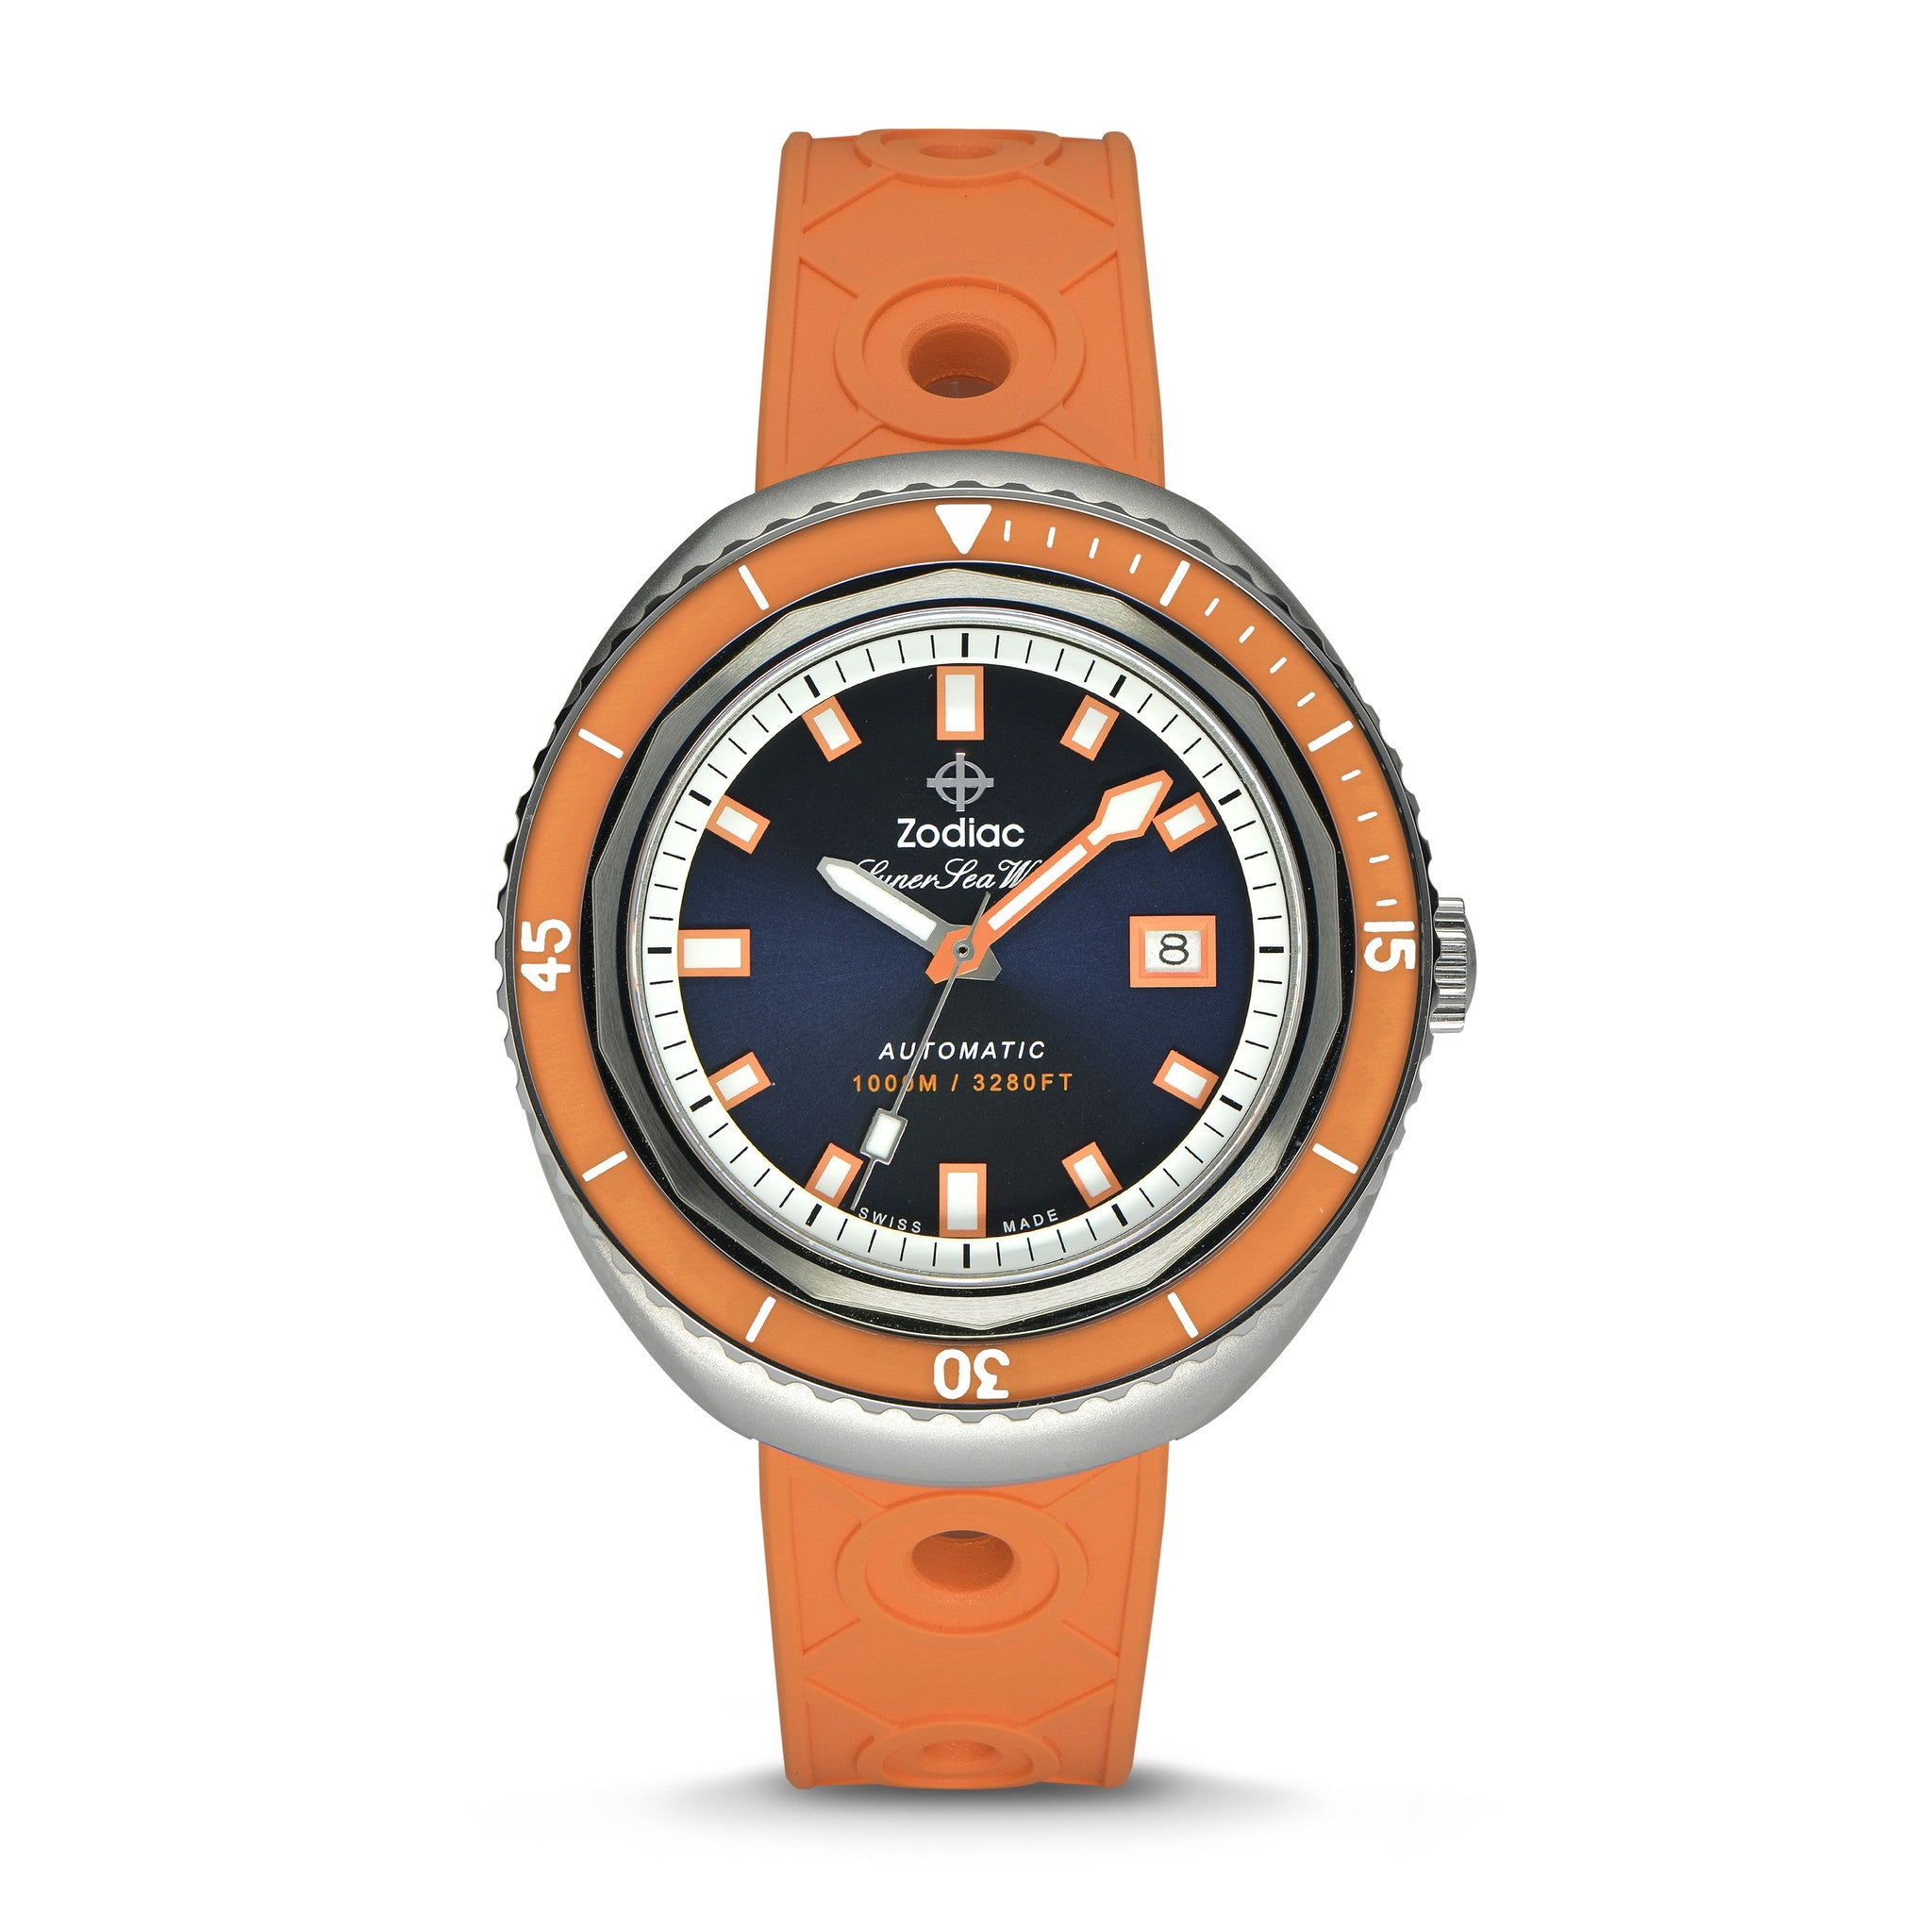 SUPER SEA WOLF 68 SATURATION AUTOMATIC ORANGE CAOUTCHOUC RUBBER WATCH